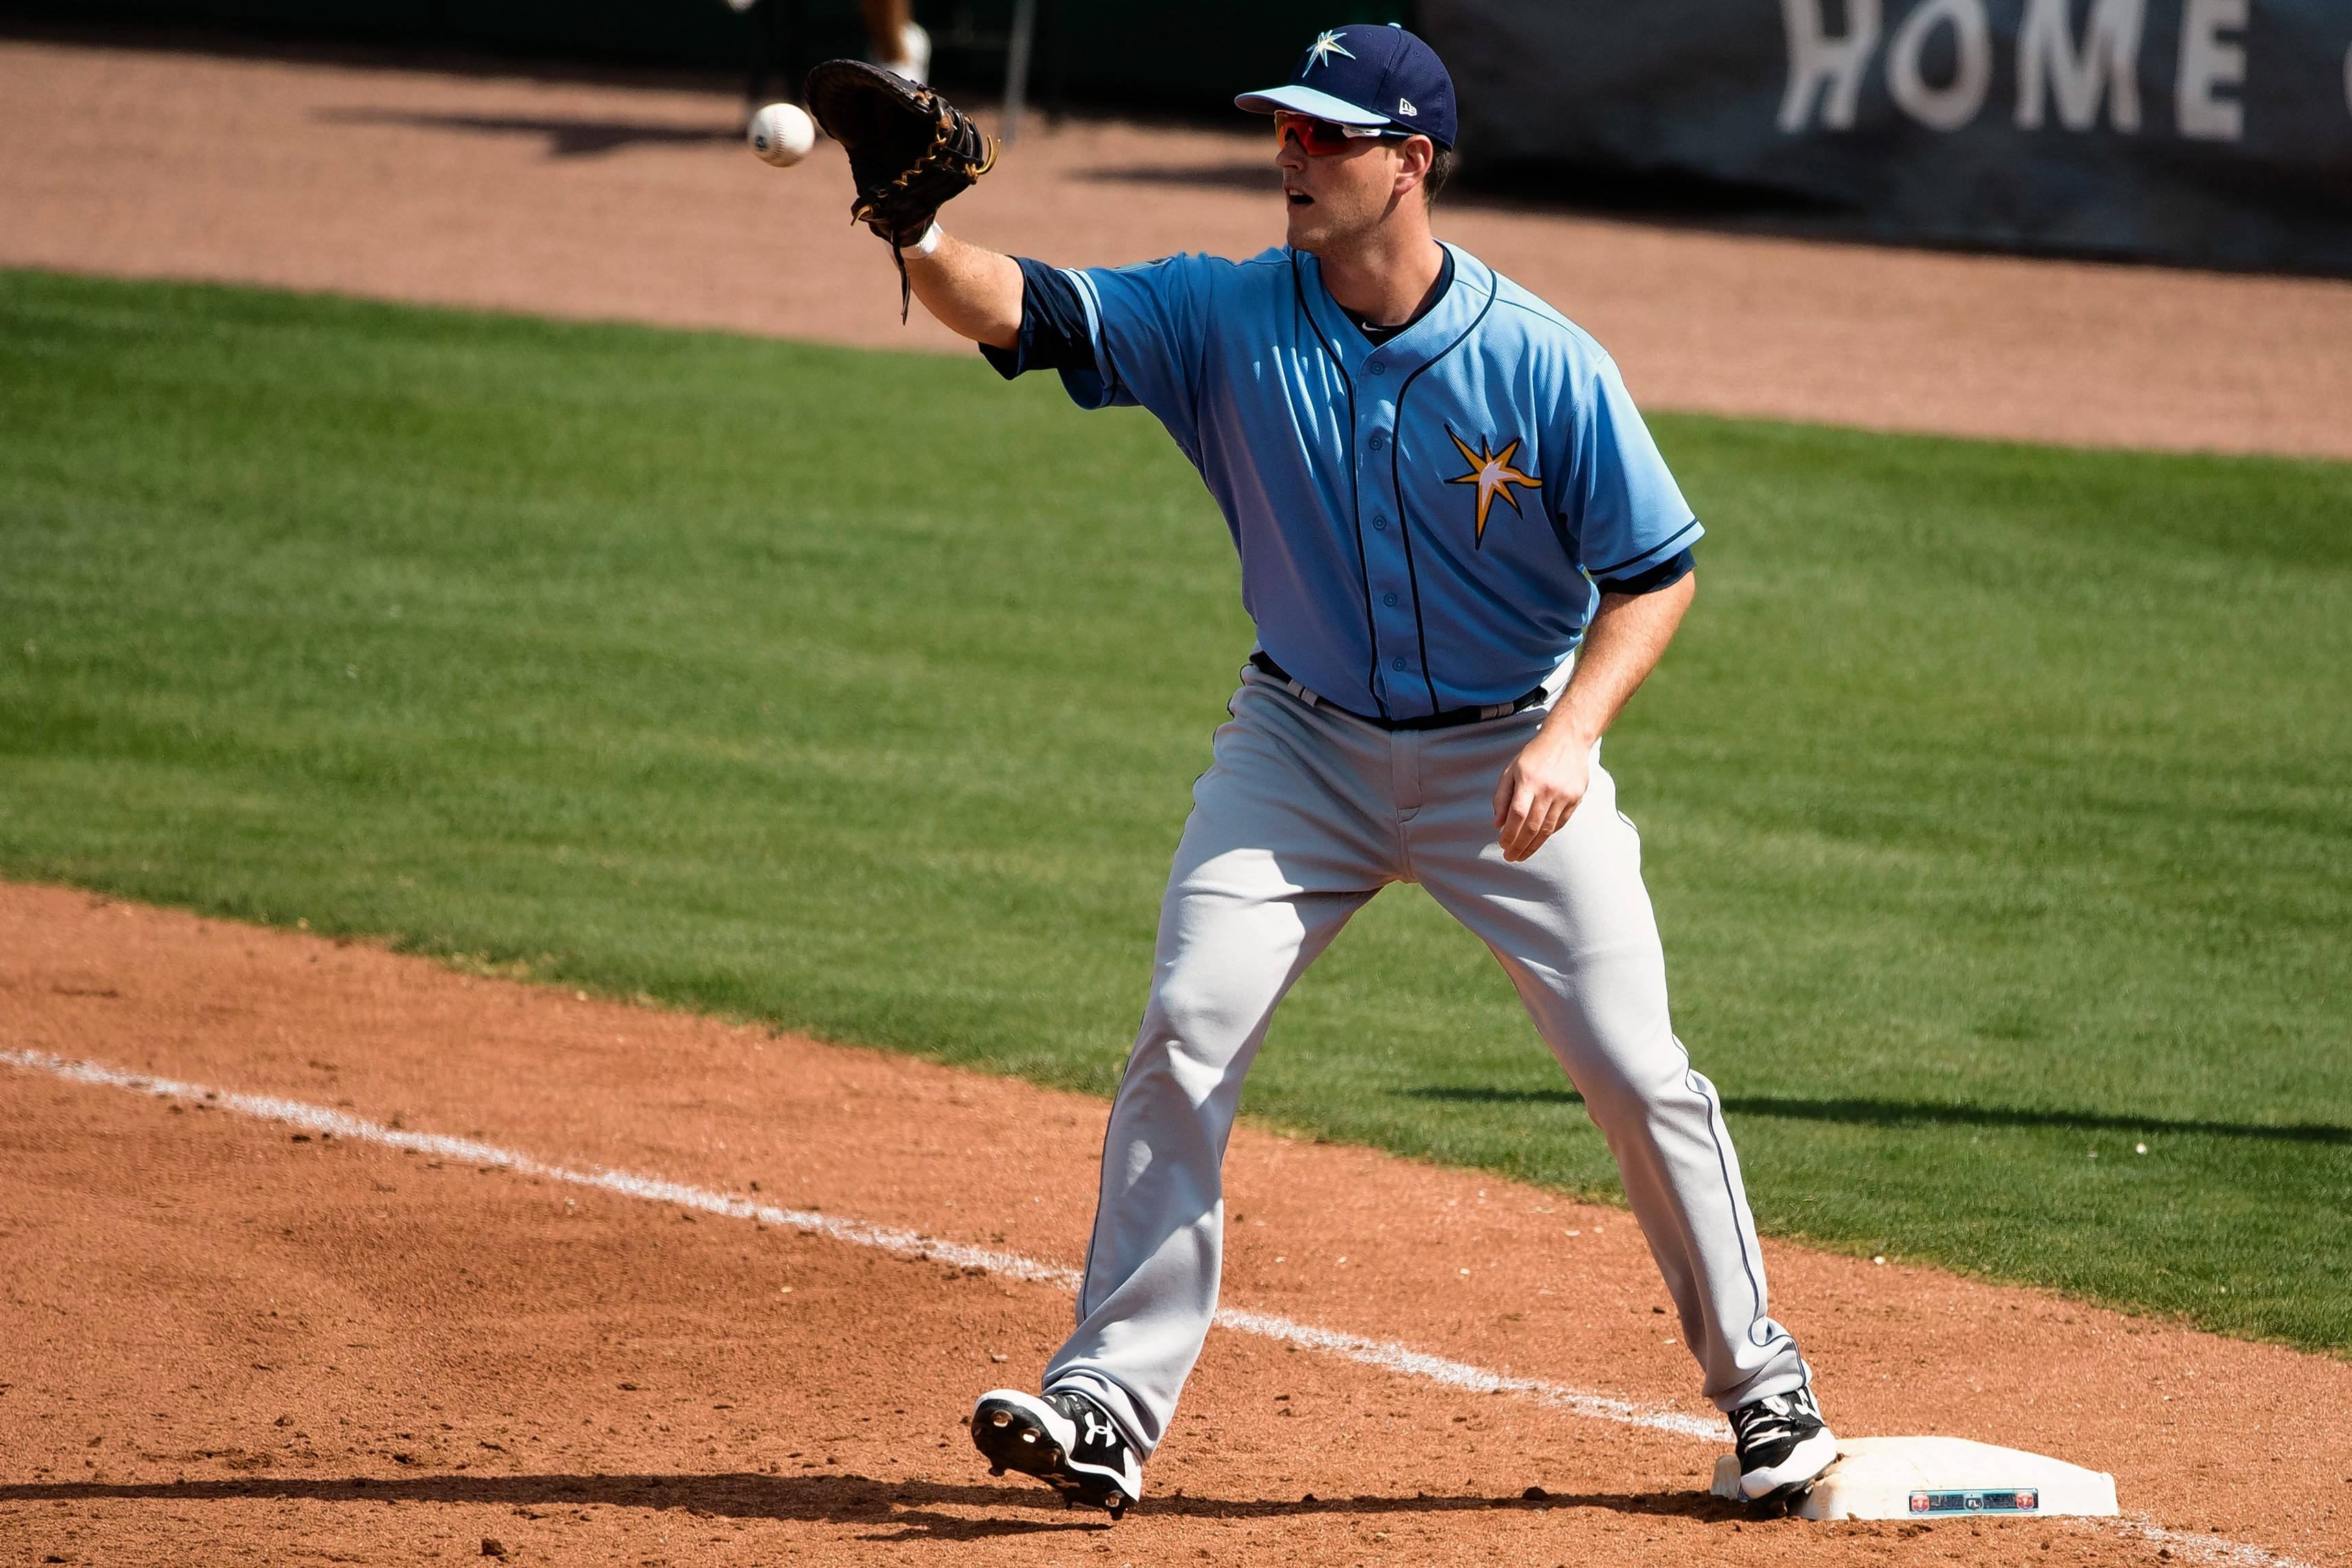 The Chicago White Sox obtained Tampa Bay Rays prospect Casey Gillaspie in a trade Thursday for reliever Dan Jennings.